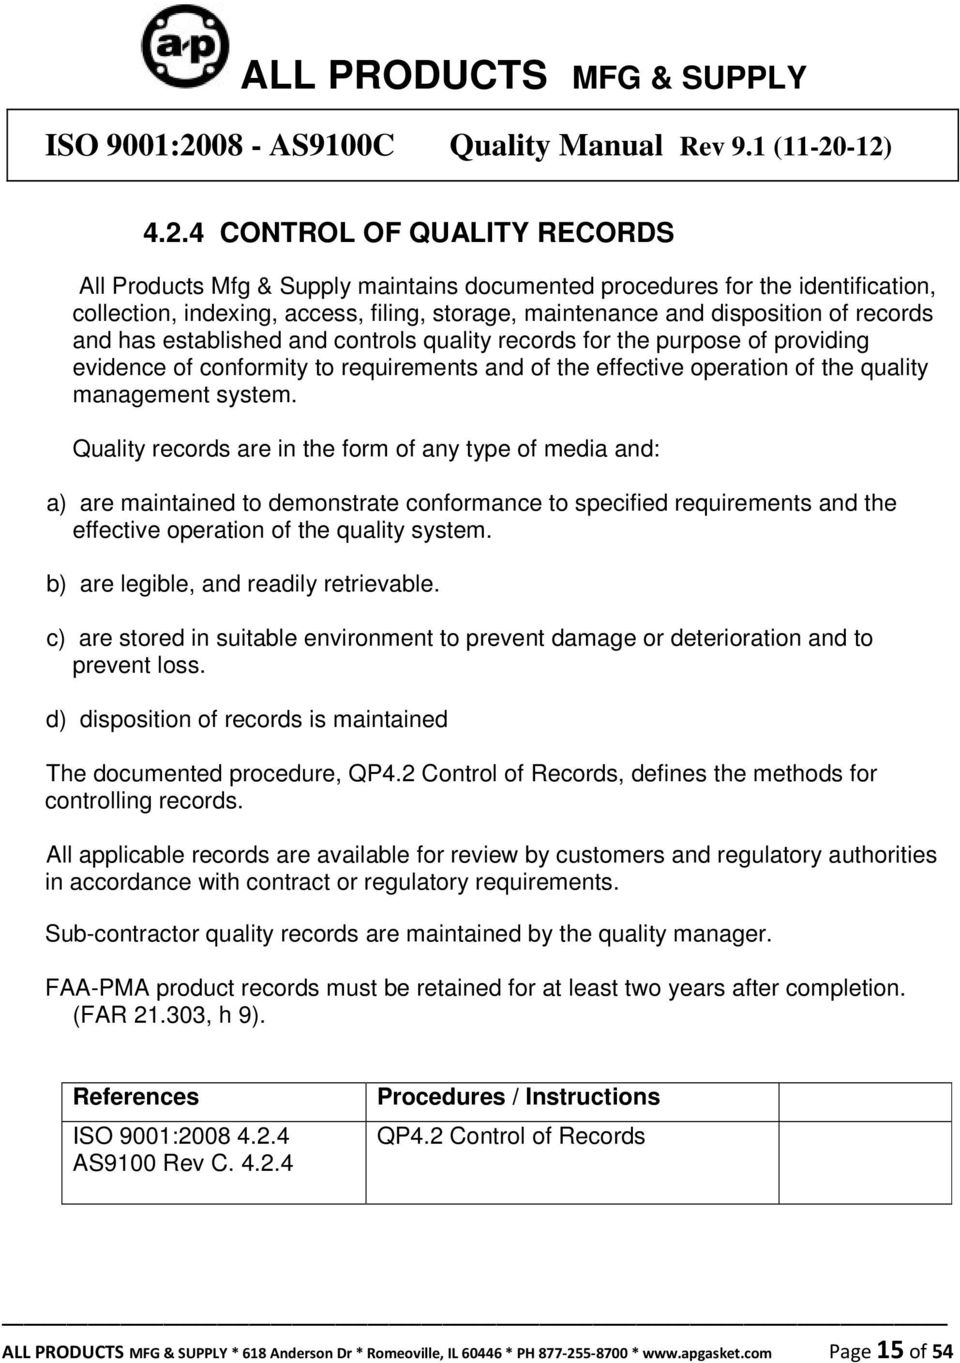 Quality records are in the form of any type of media and: a) are maintained to demonstrate conformance to specified requirements and the effective operation of the quality system.